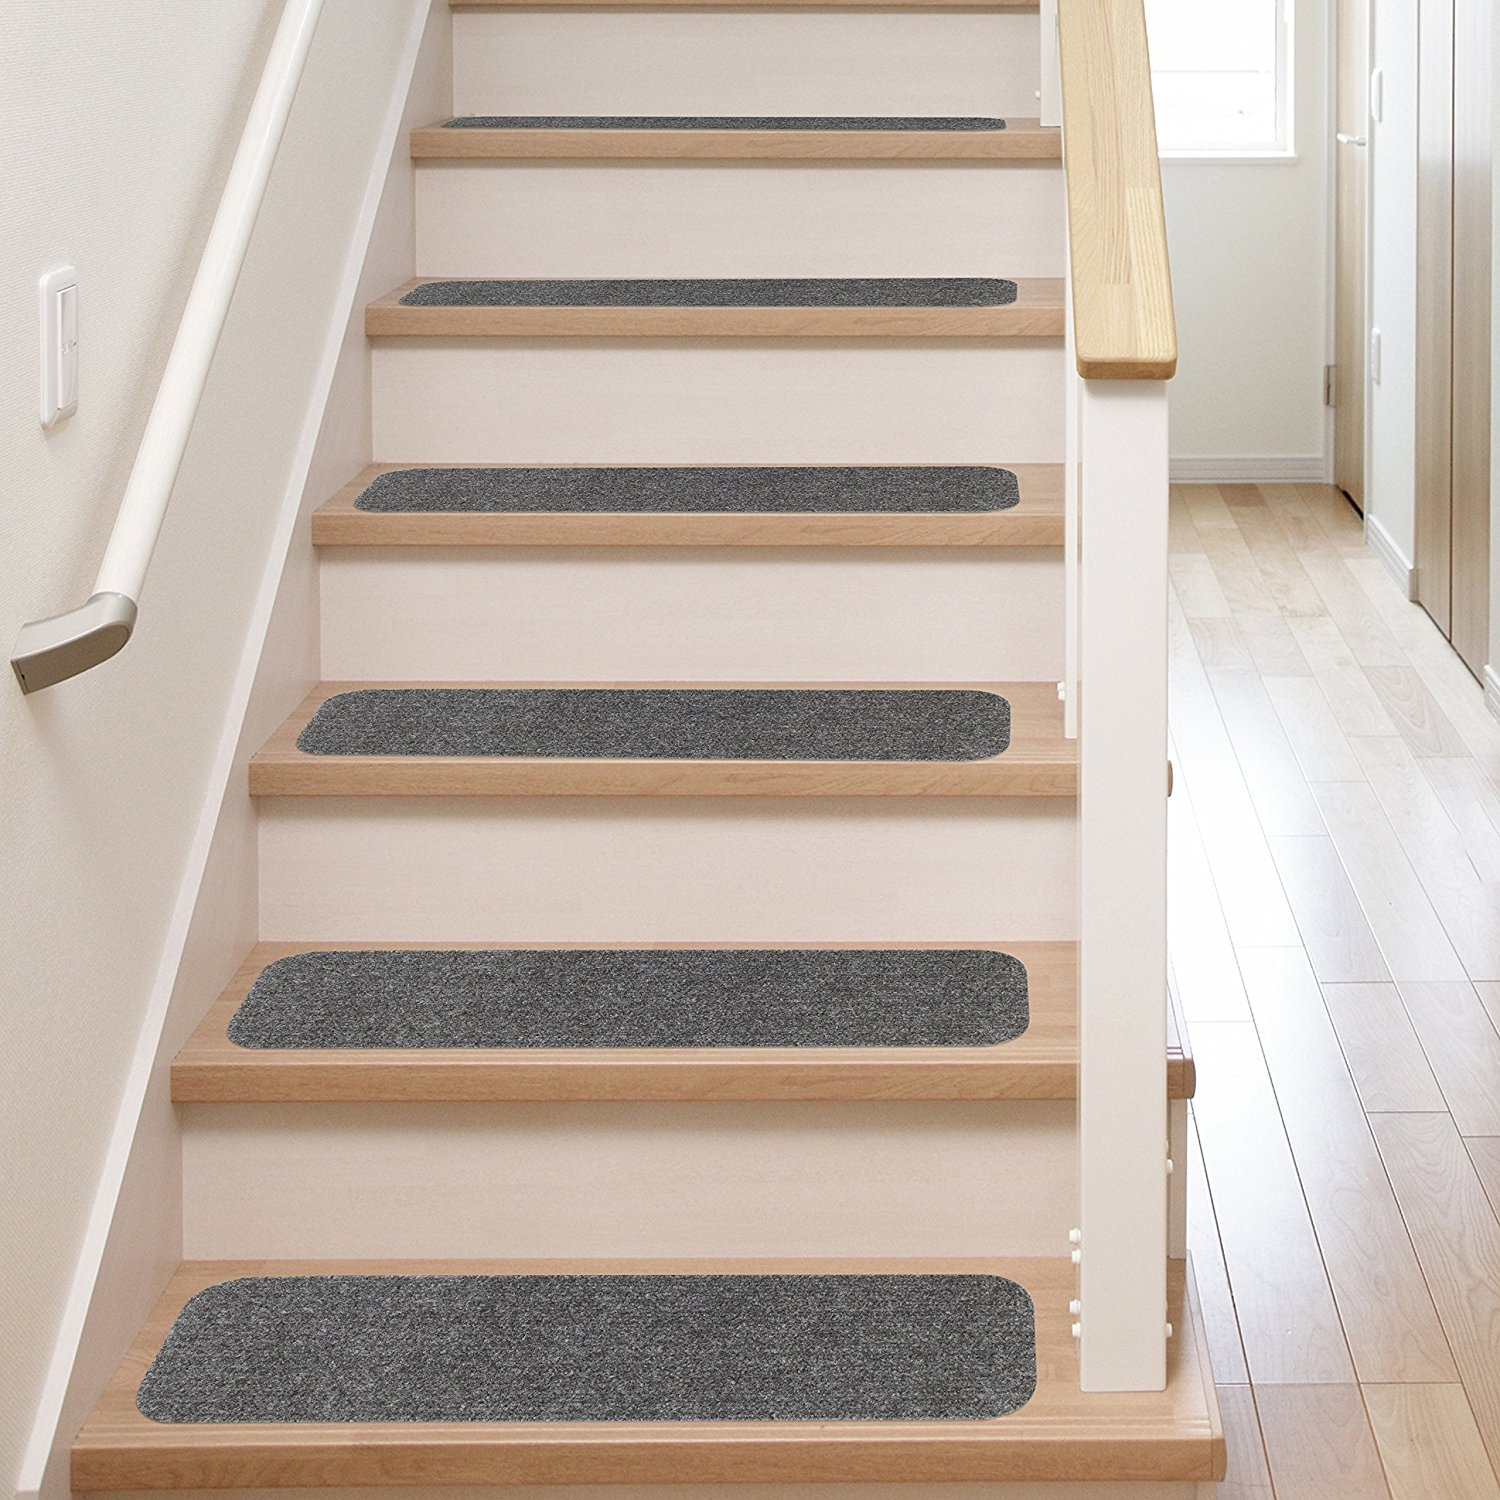 Popular Photo of Wooden Stair Grips